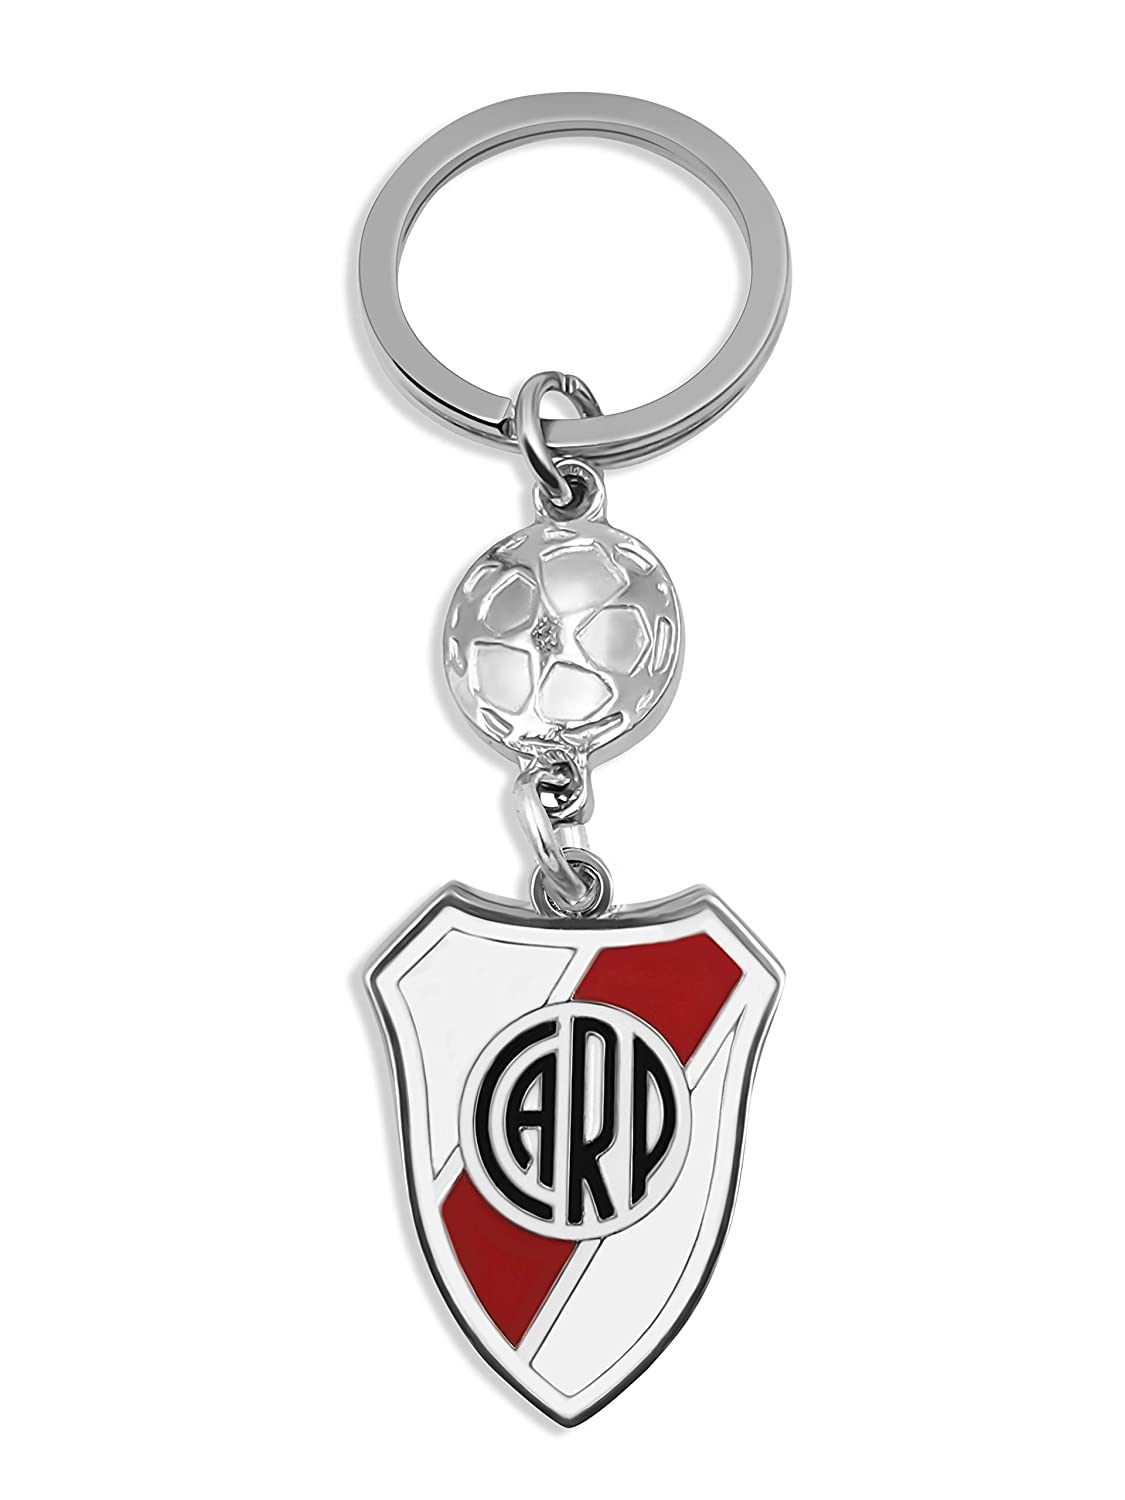 Amazon.com: Keychain ARGENTINA SOCCER TEAM RIVER PLATE: Shoes